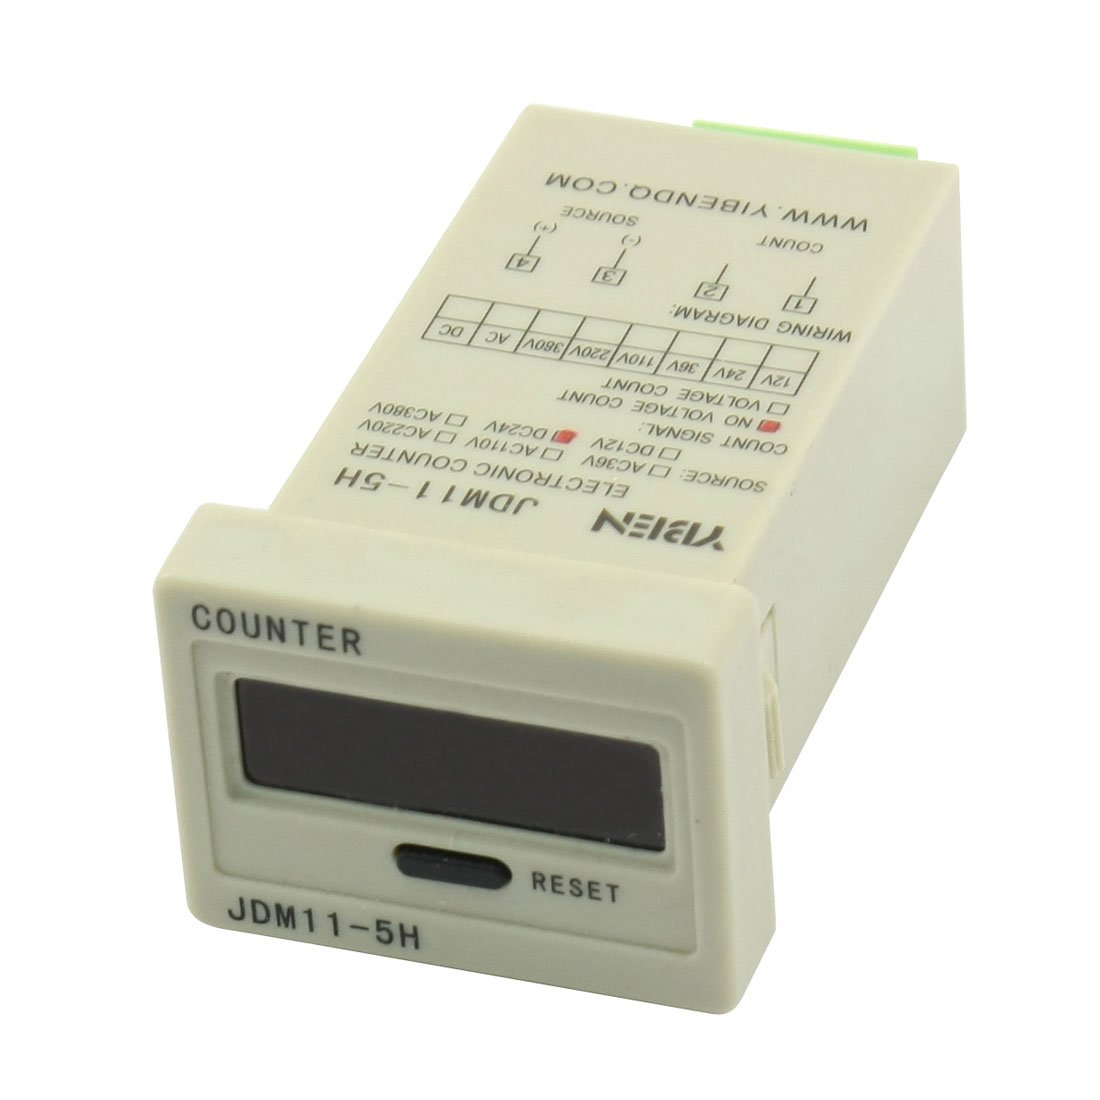 Dc 24v 0 99999 5 Digit Pressing Reset Accumulating Counter How To Decipher The Wiring Schematic Of A 110220v